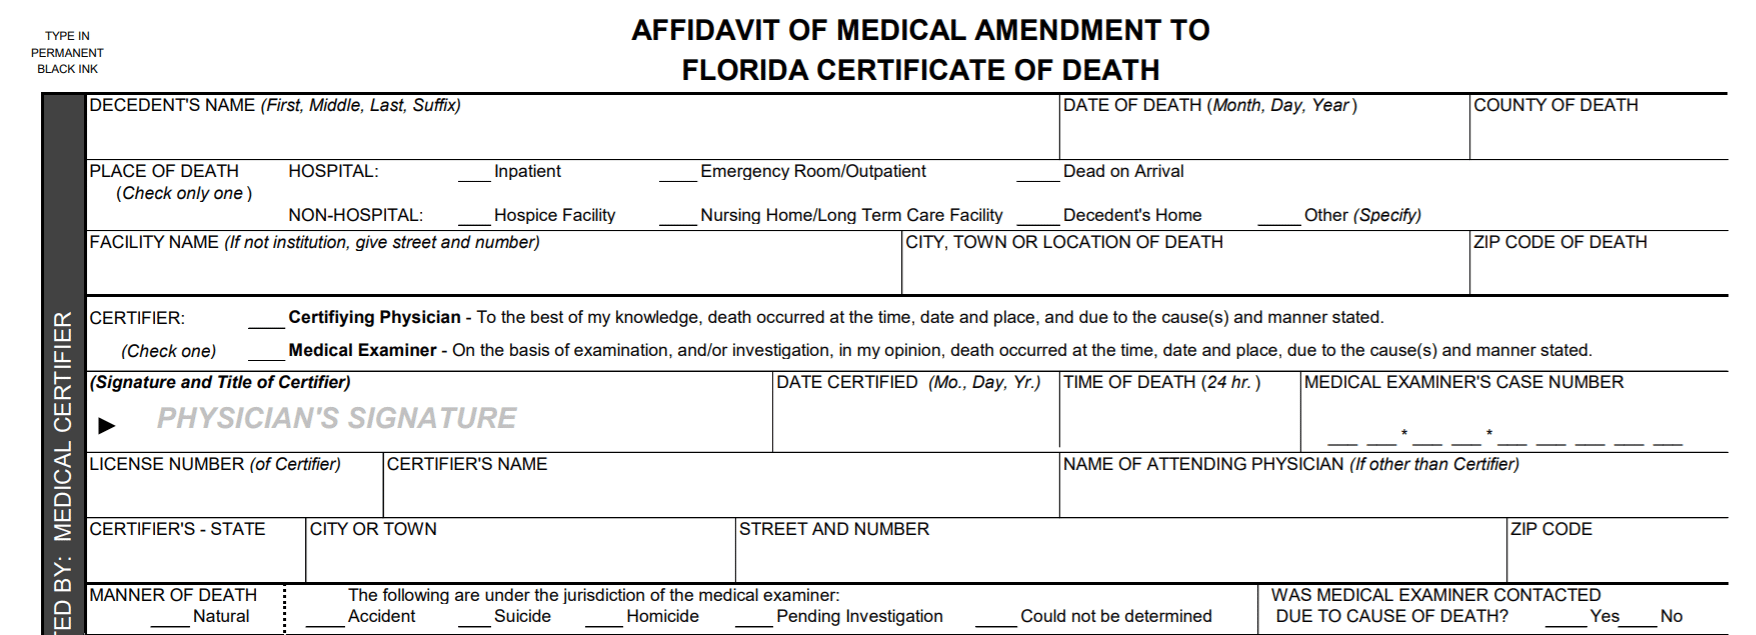 Amending or Changing Medical Information on a Florida Death Certificate